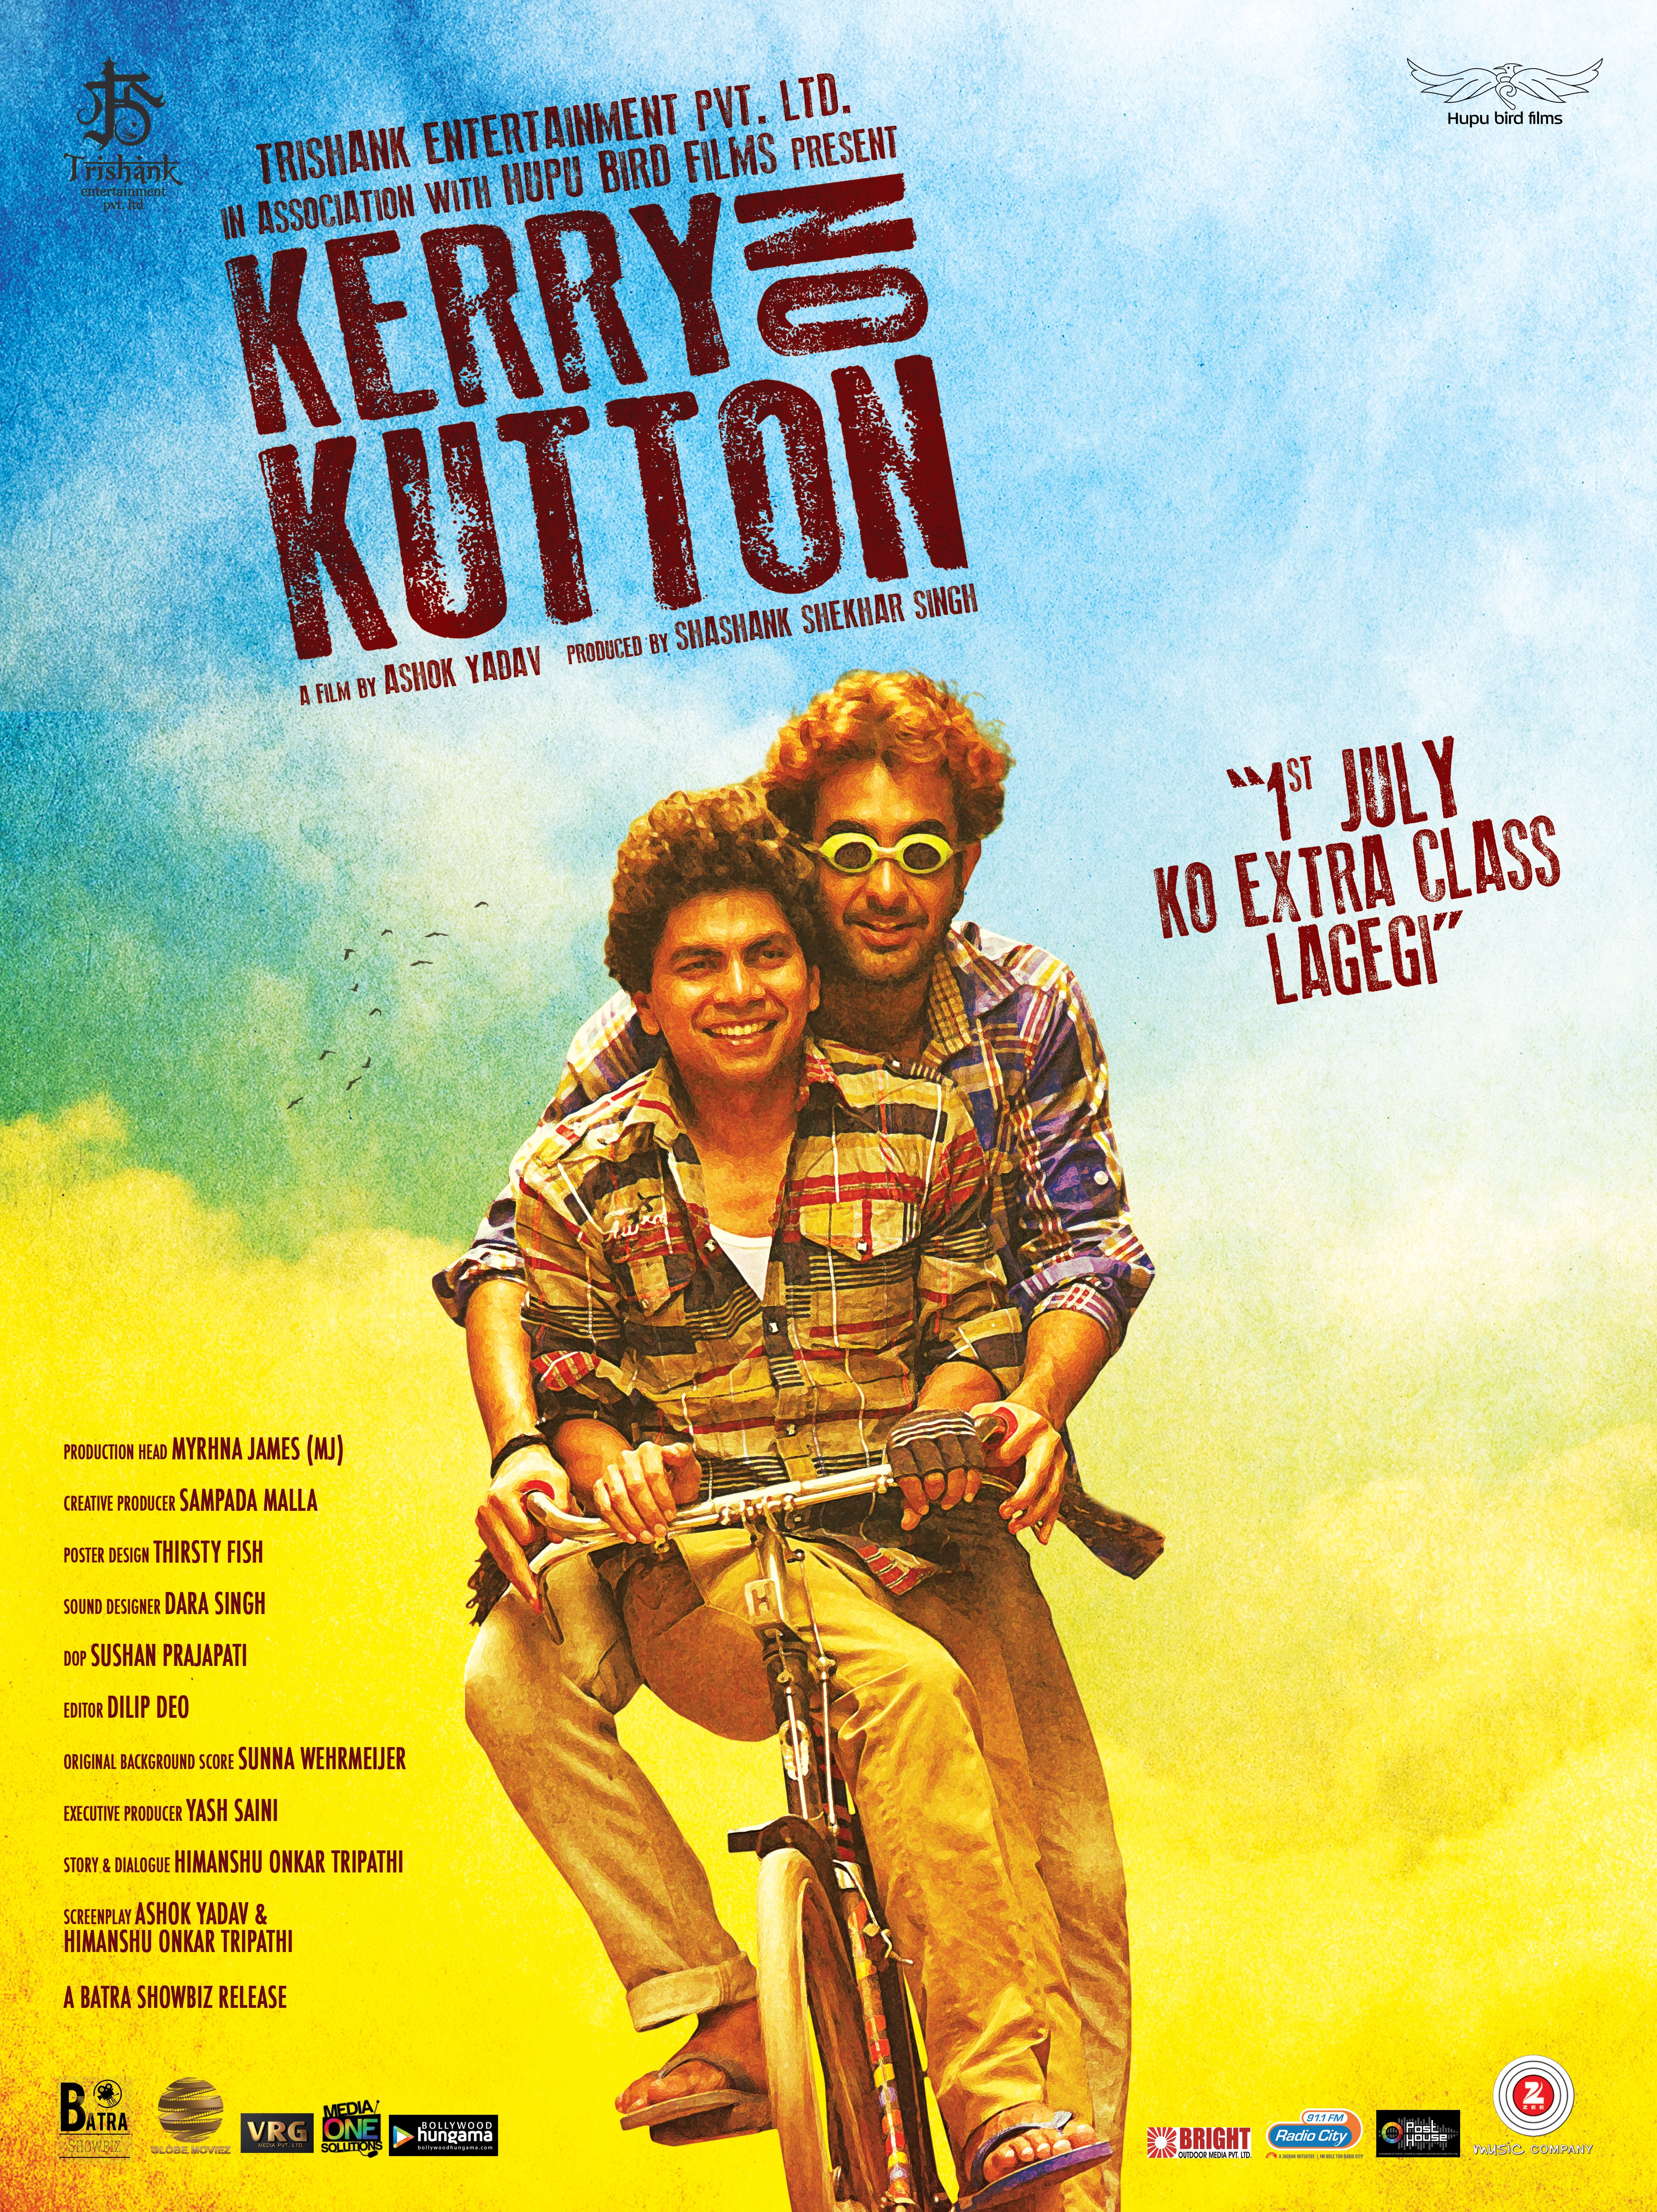 image Kerry on Kutton Watch Full Movie Free Online